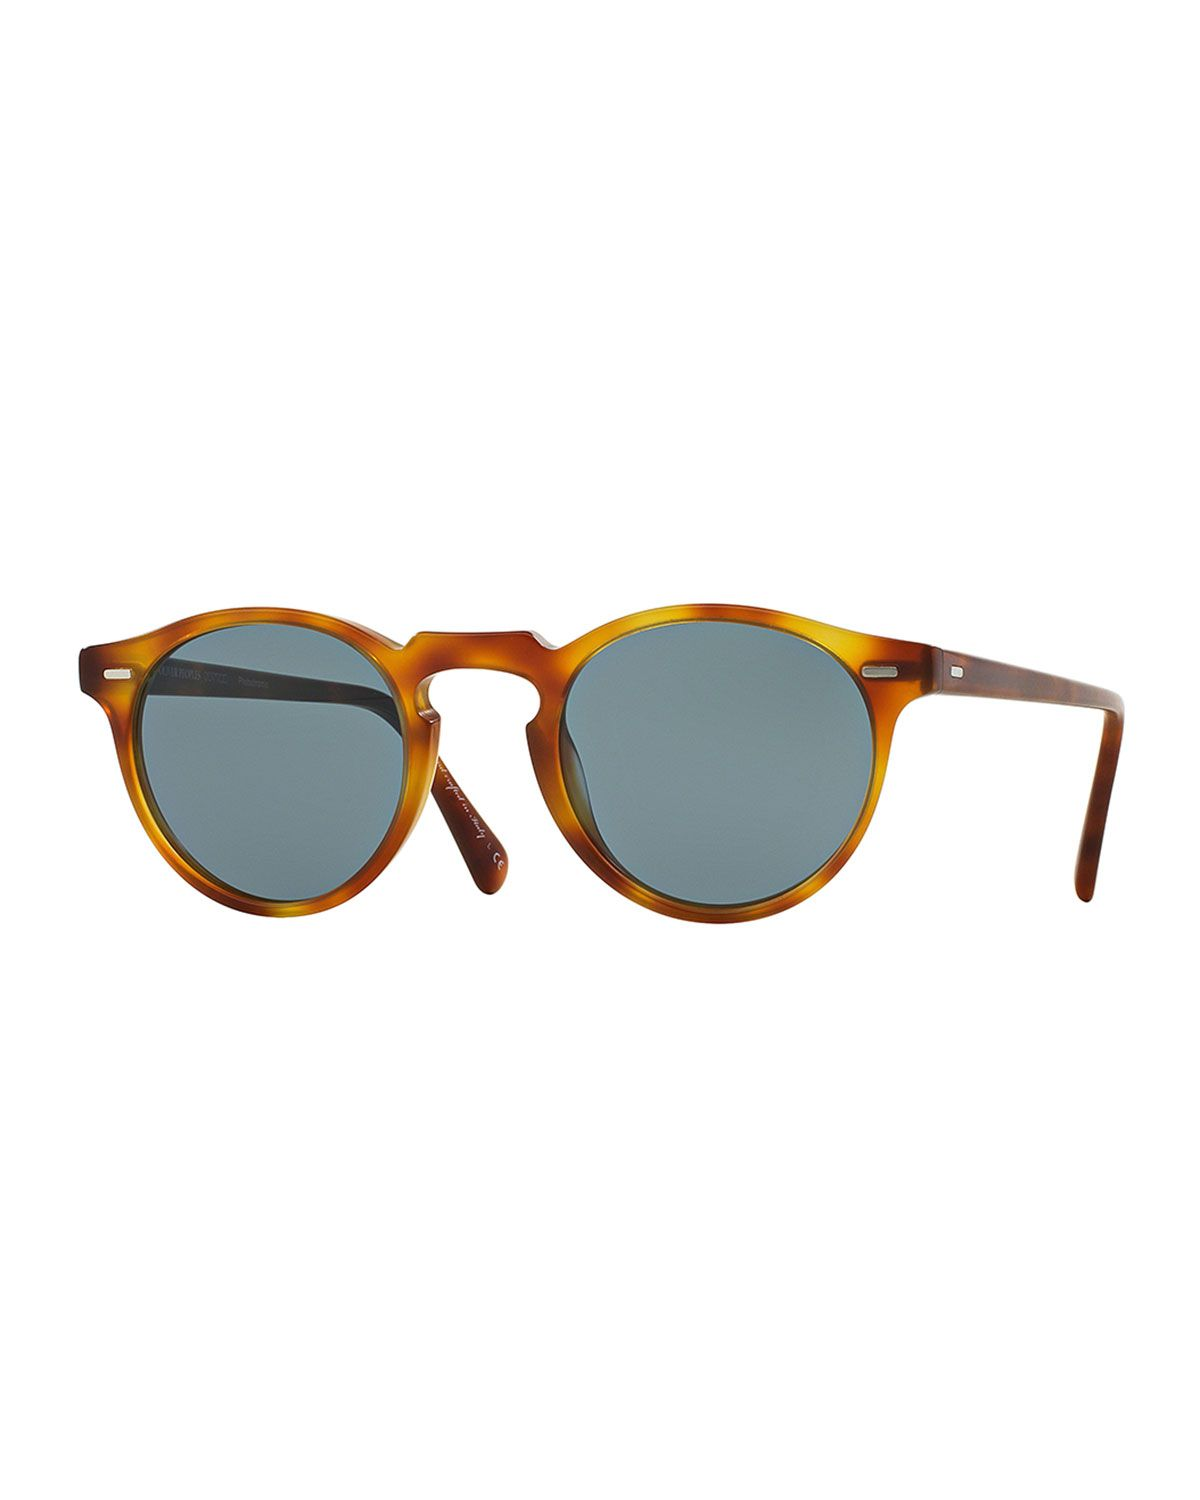 9768ebcf13 OLIVER PEOPLES GREGORY PECK ROUND PLASTIC SUNGLASSES